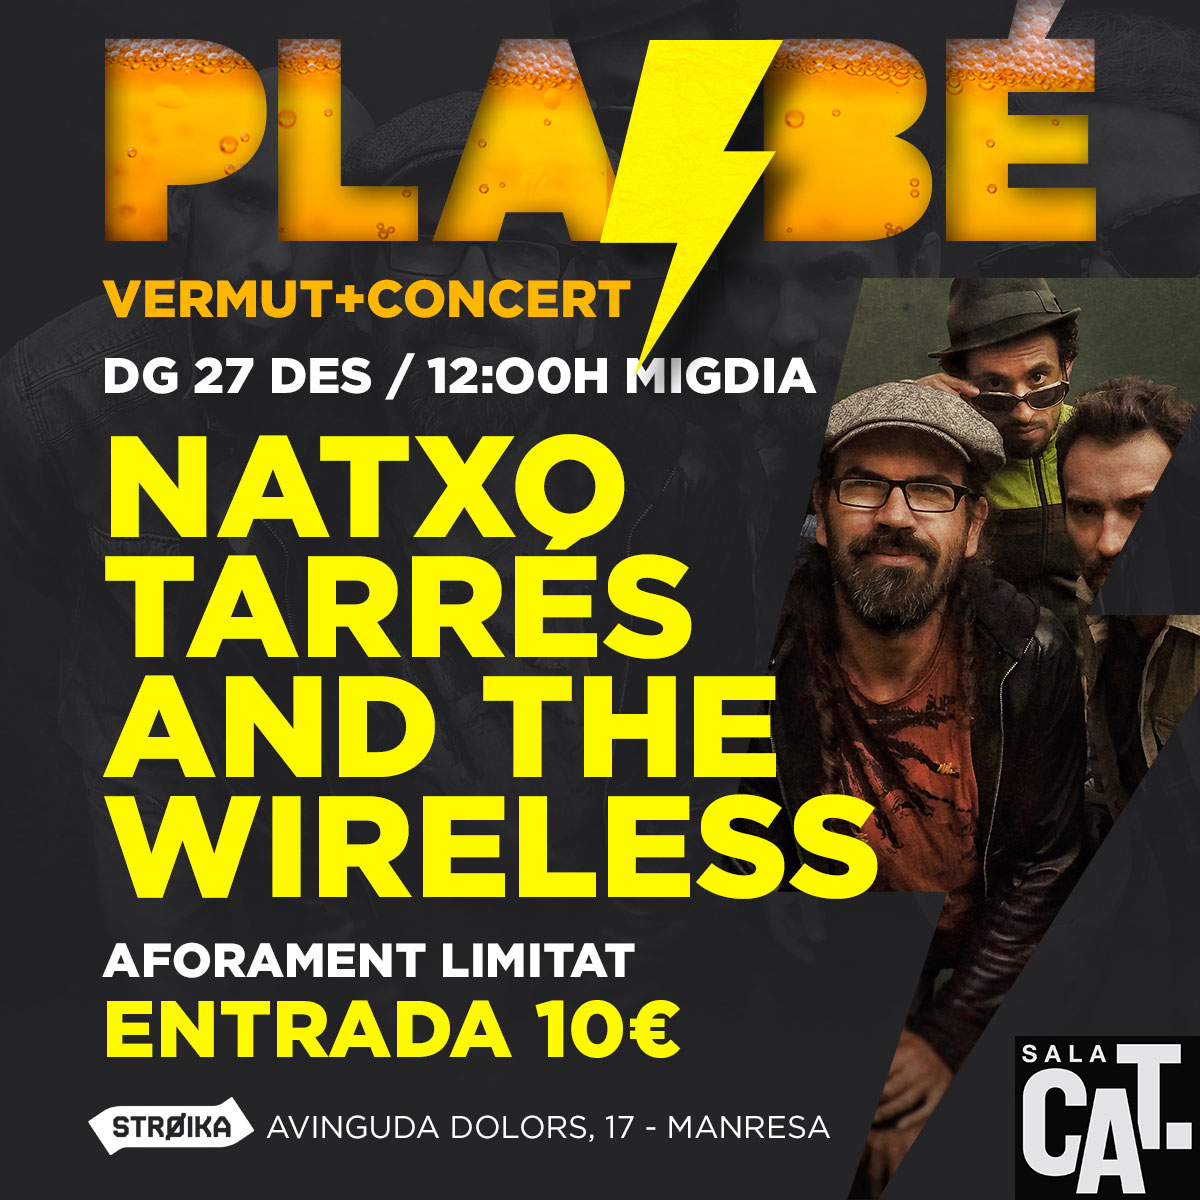 NATXO TARRÉS & THE WIRELESS